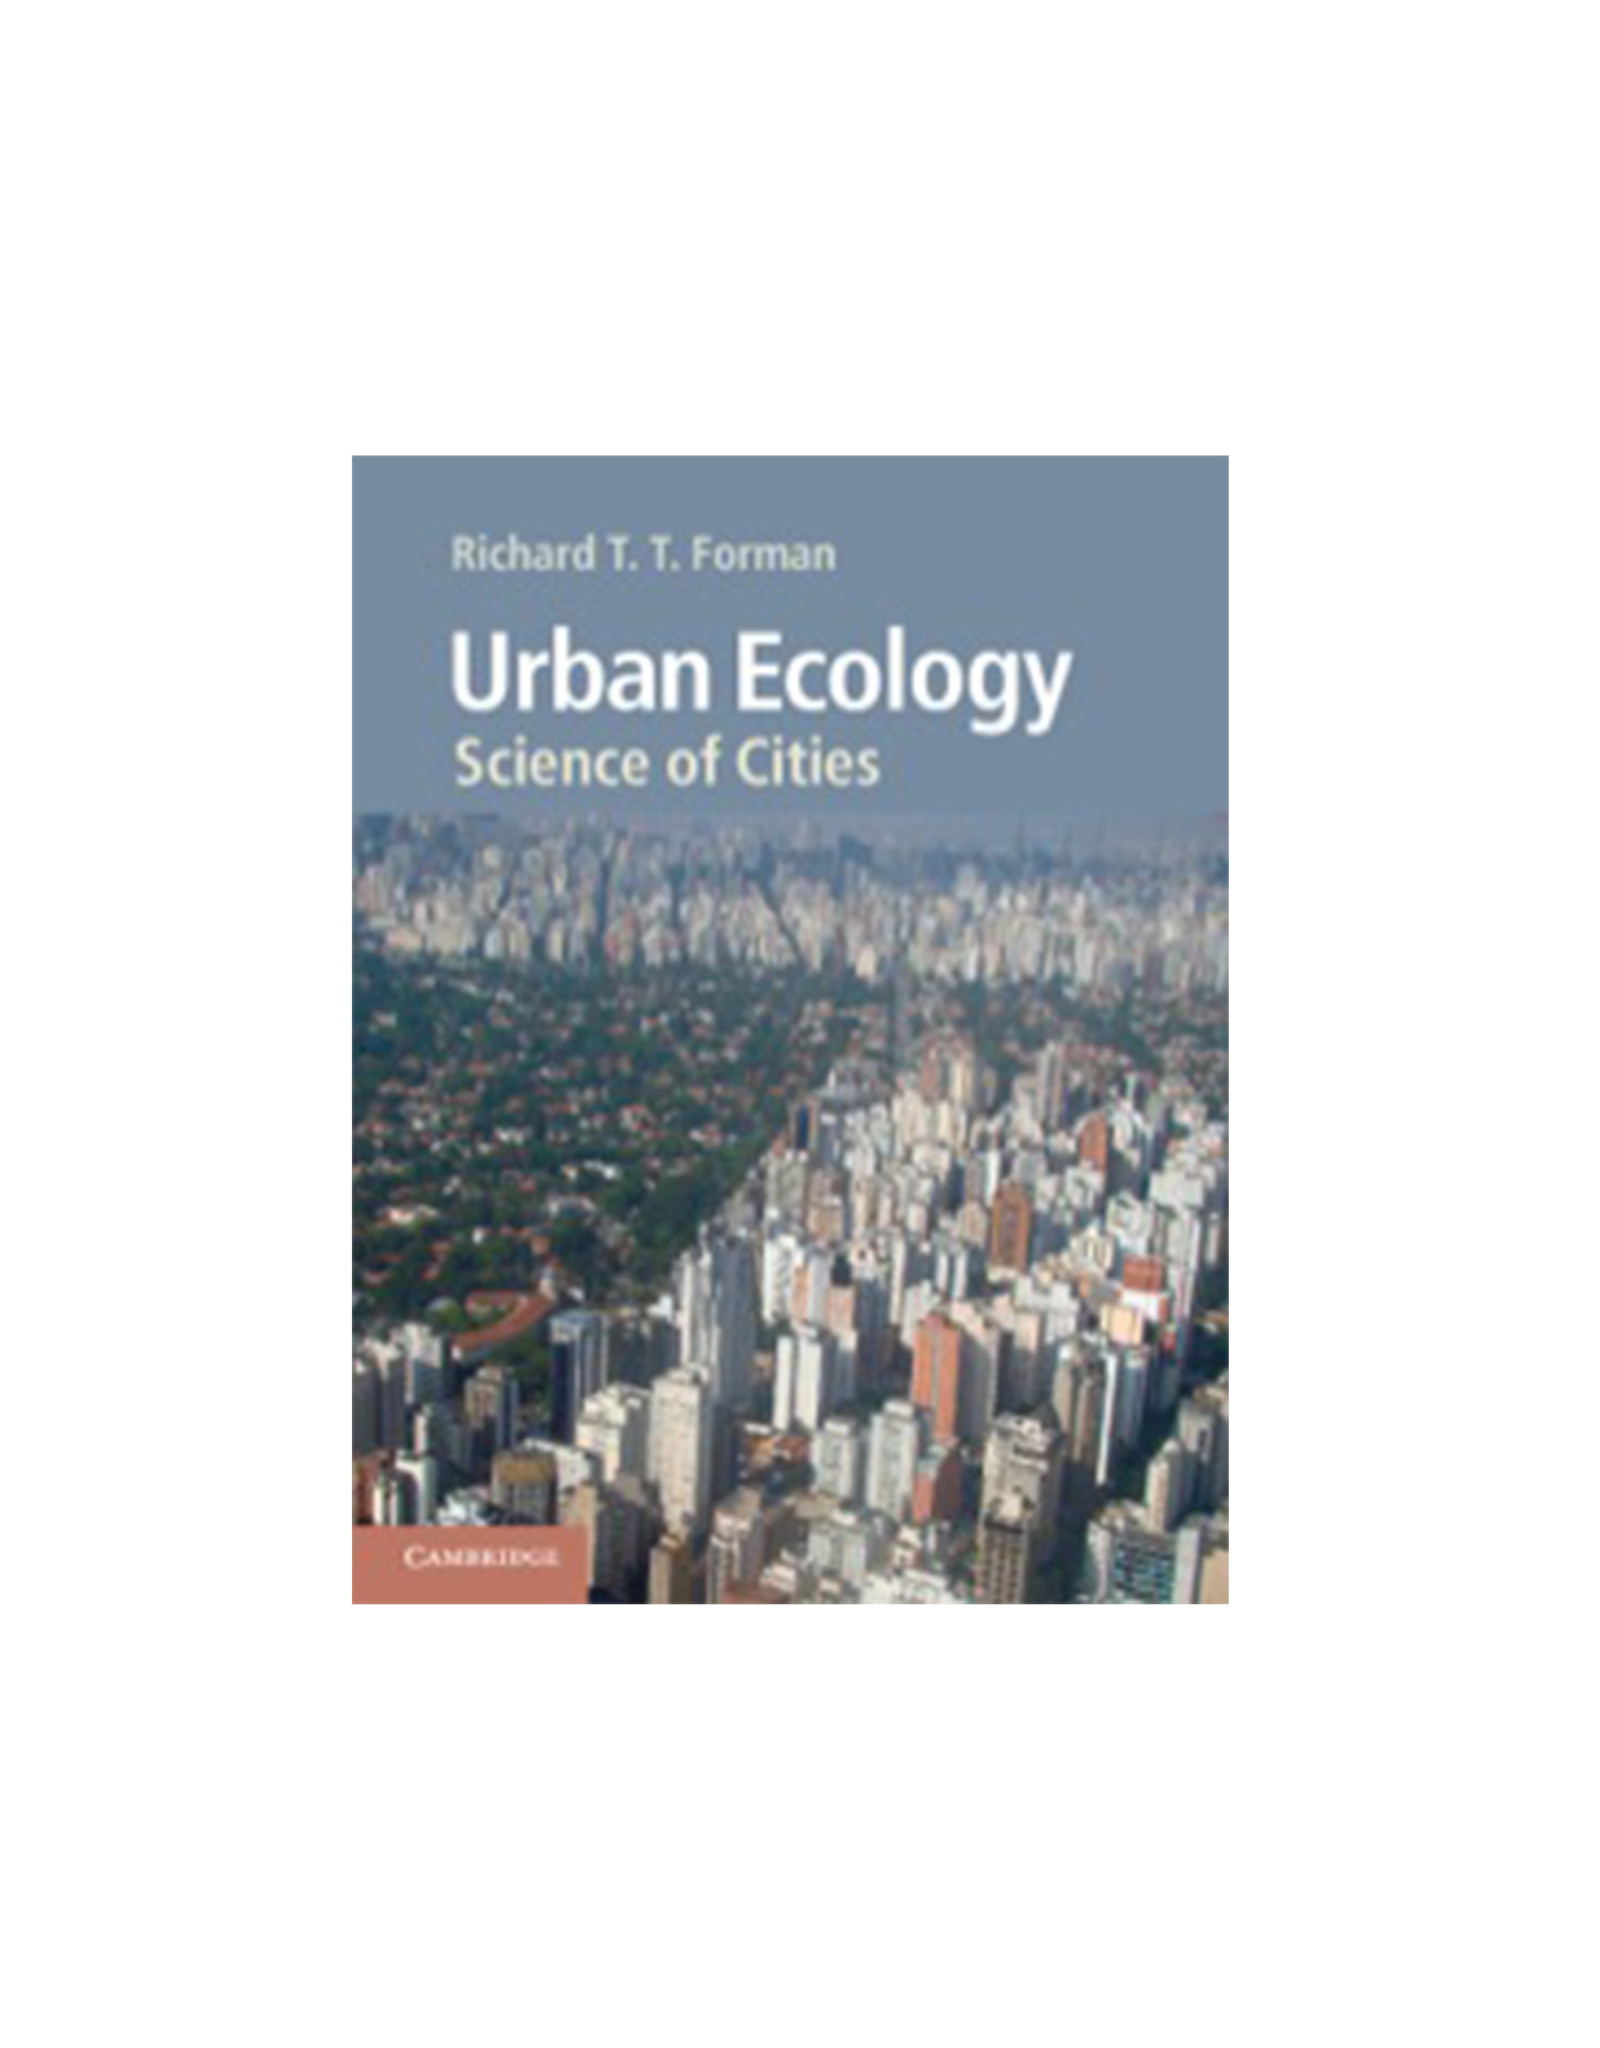 Urban Ecology, Science of Cities